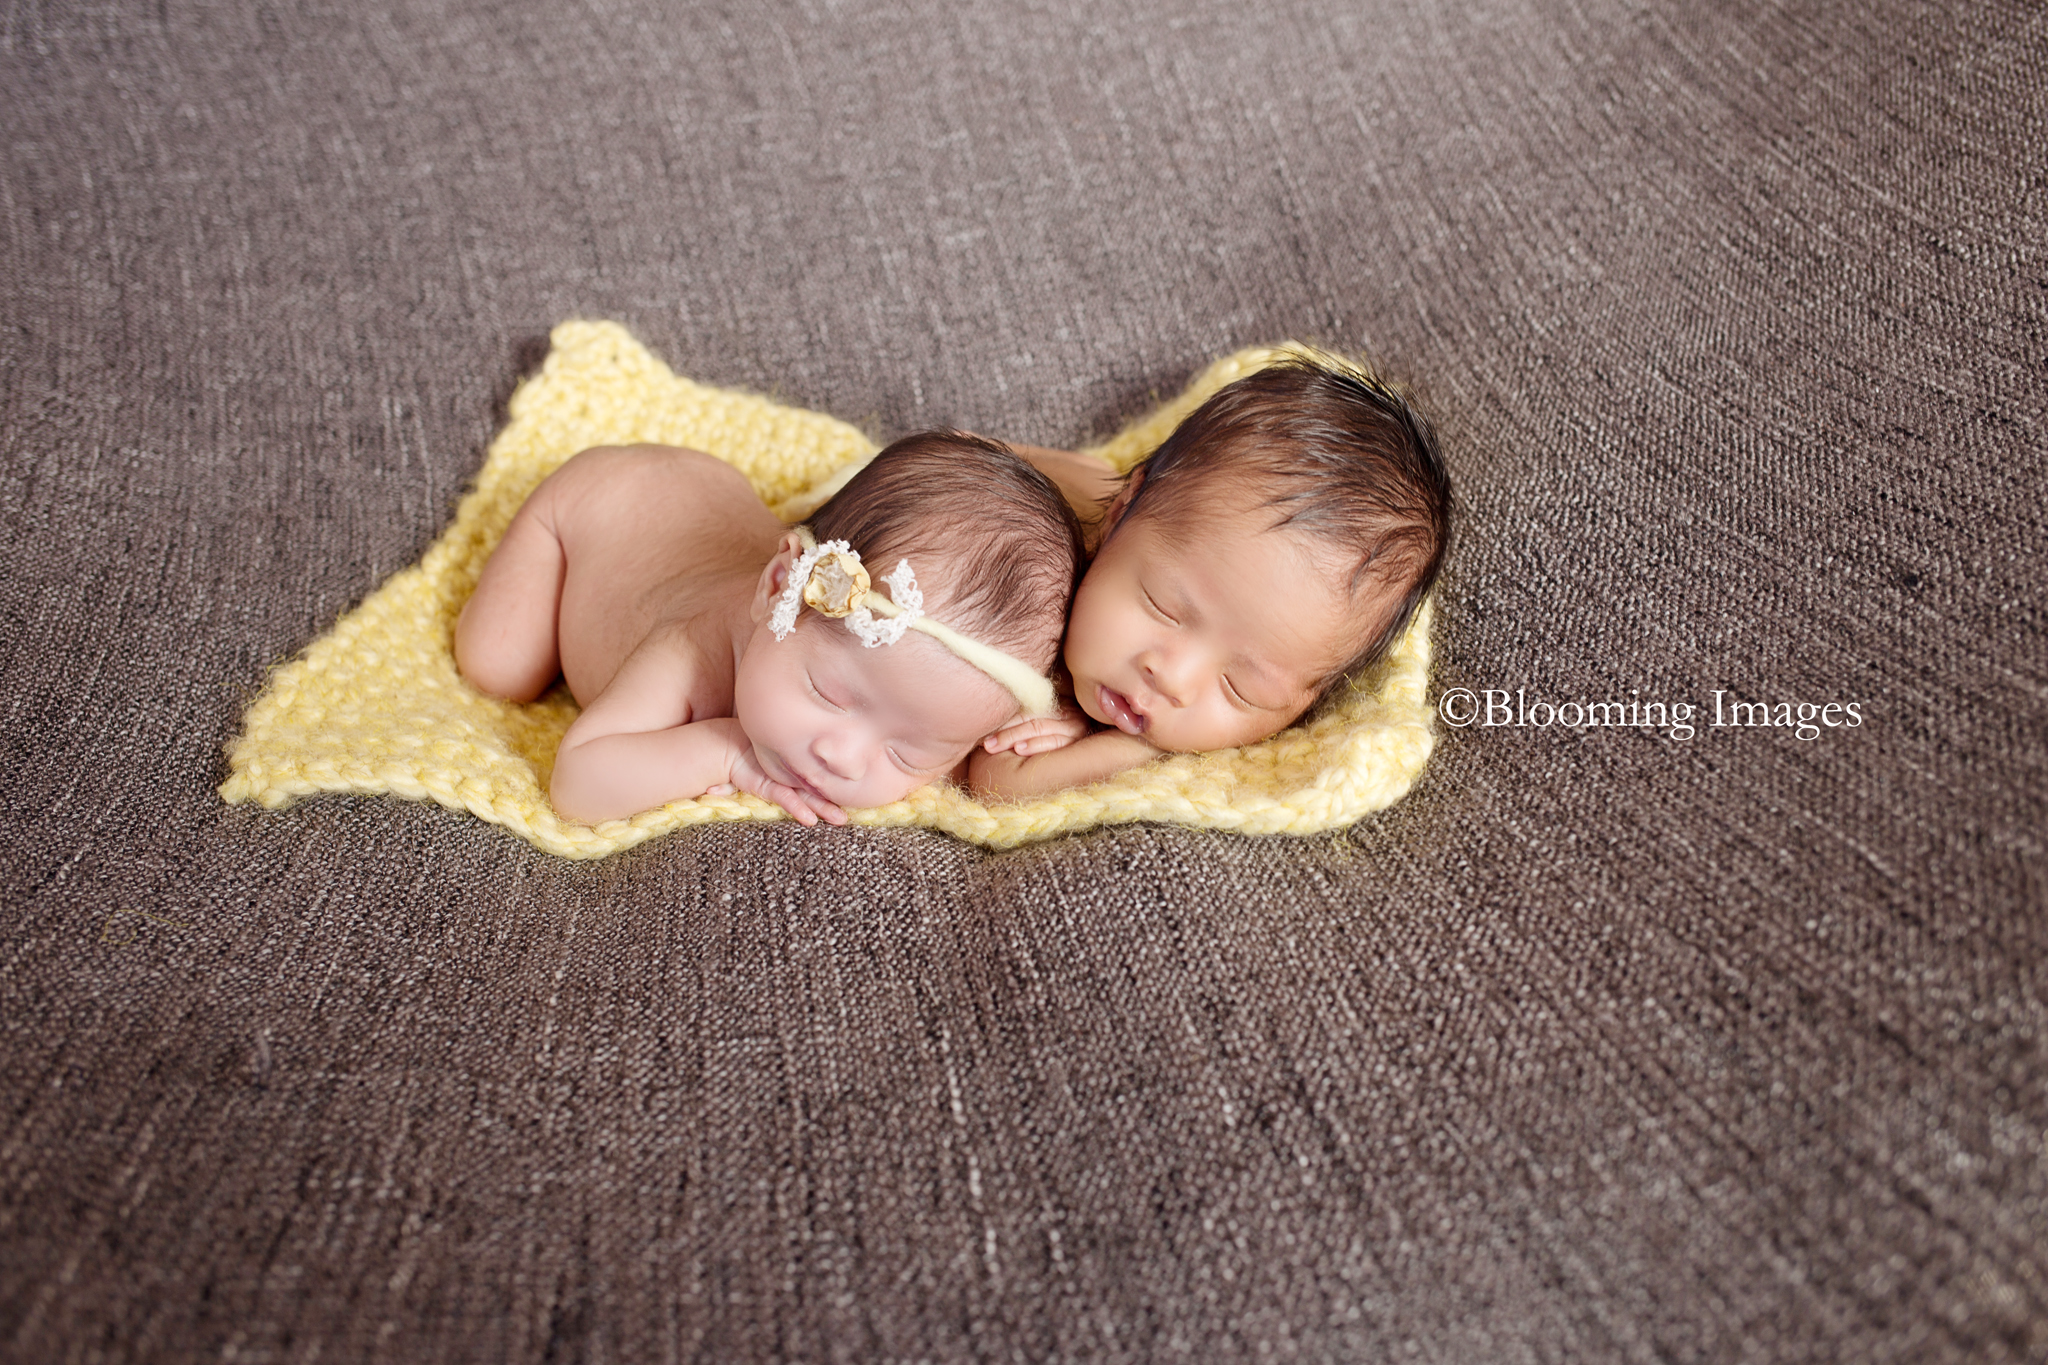 Albuquerque Newborn Photographer, Newborn Photographers in Albuquerque, Albuquerque Newborn Photographers, Baby Photographers in Albuquerque, Rio Rancho Newborn Photographers, Santa Fe newborn Photographers